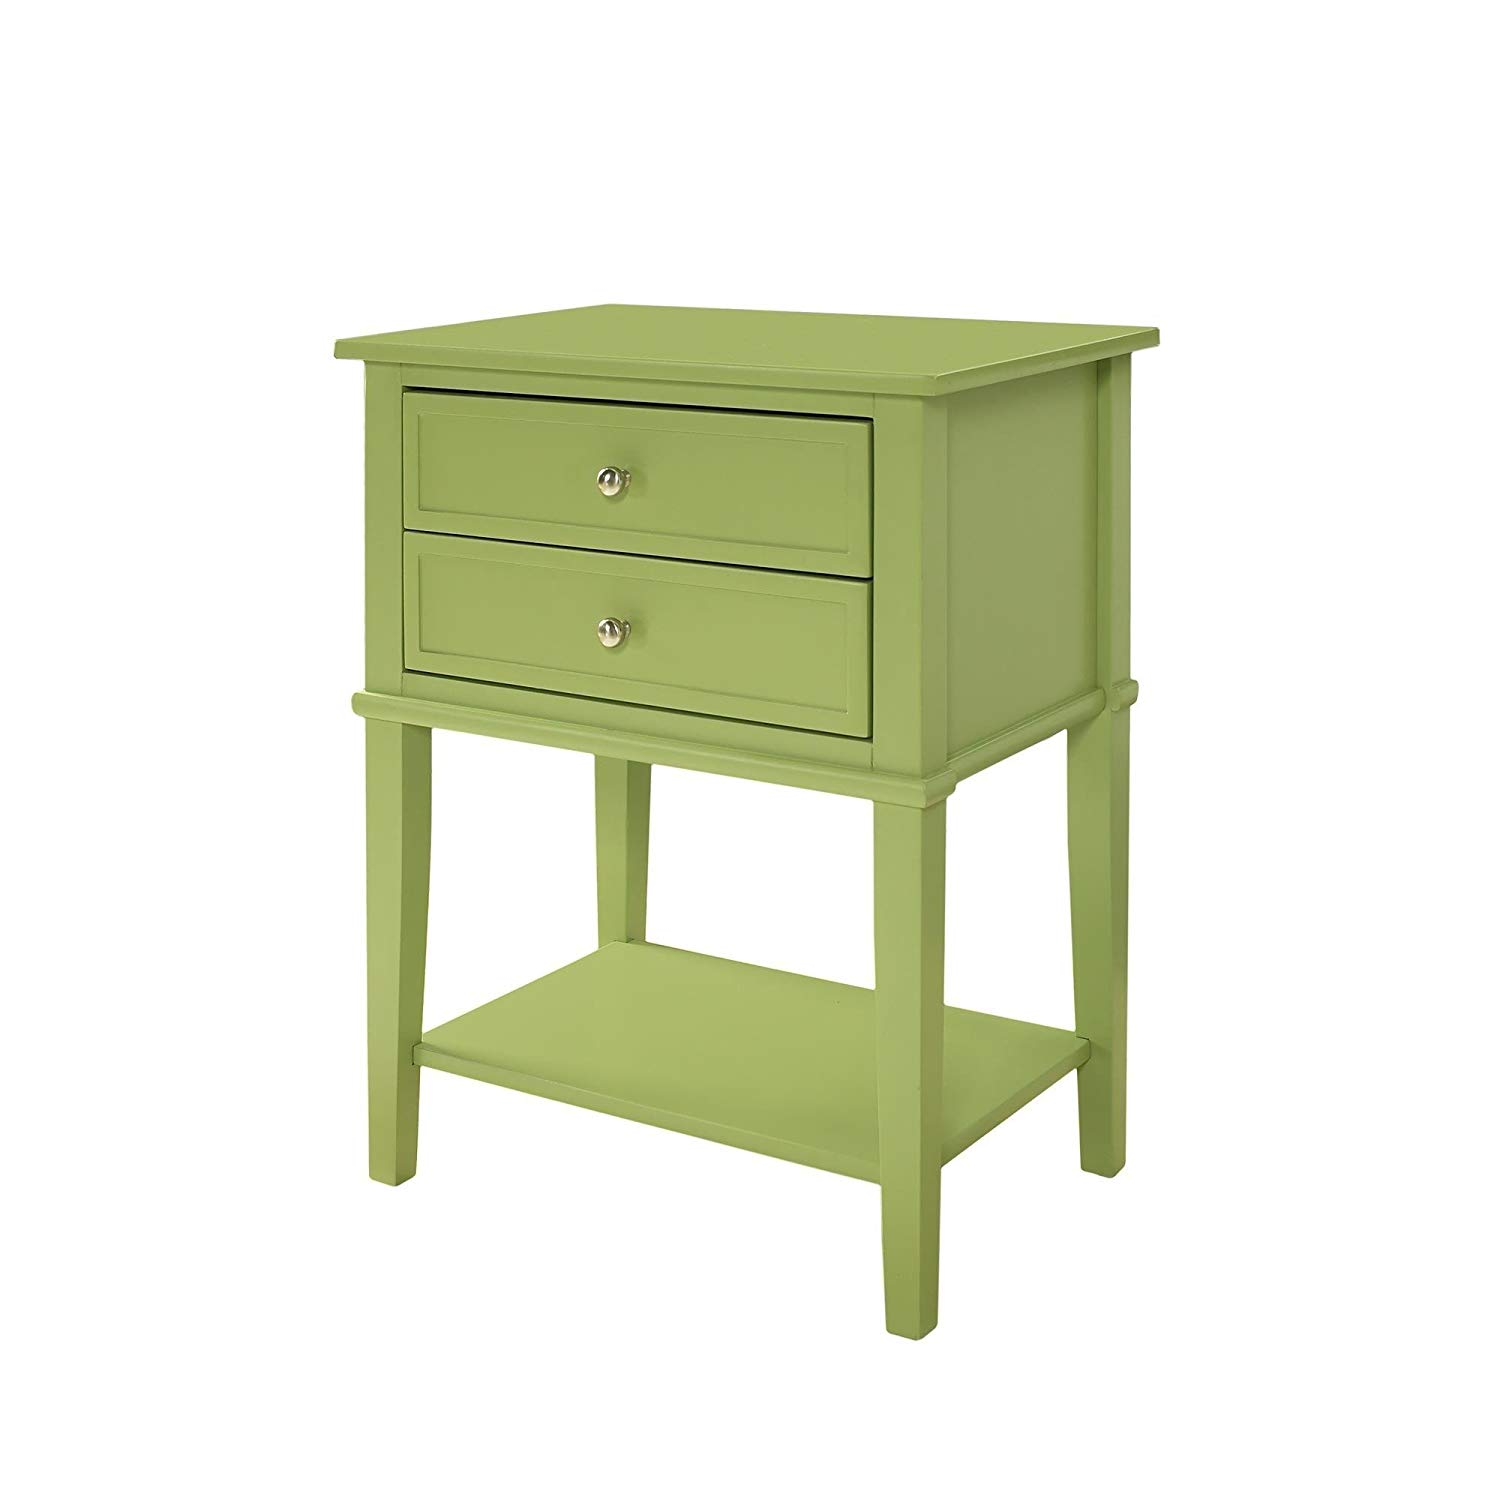 casual clay alder home isleton white drawer accent prepac table painted solid wood and mdf large smooth top green kitchen dining modern trestle goods chairs little outdoor